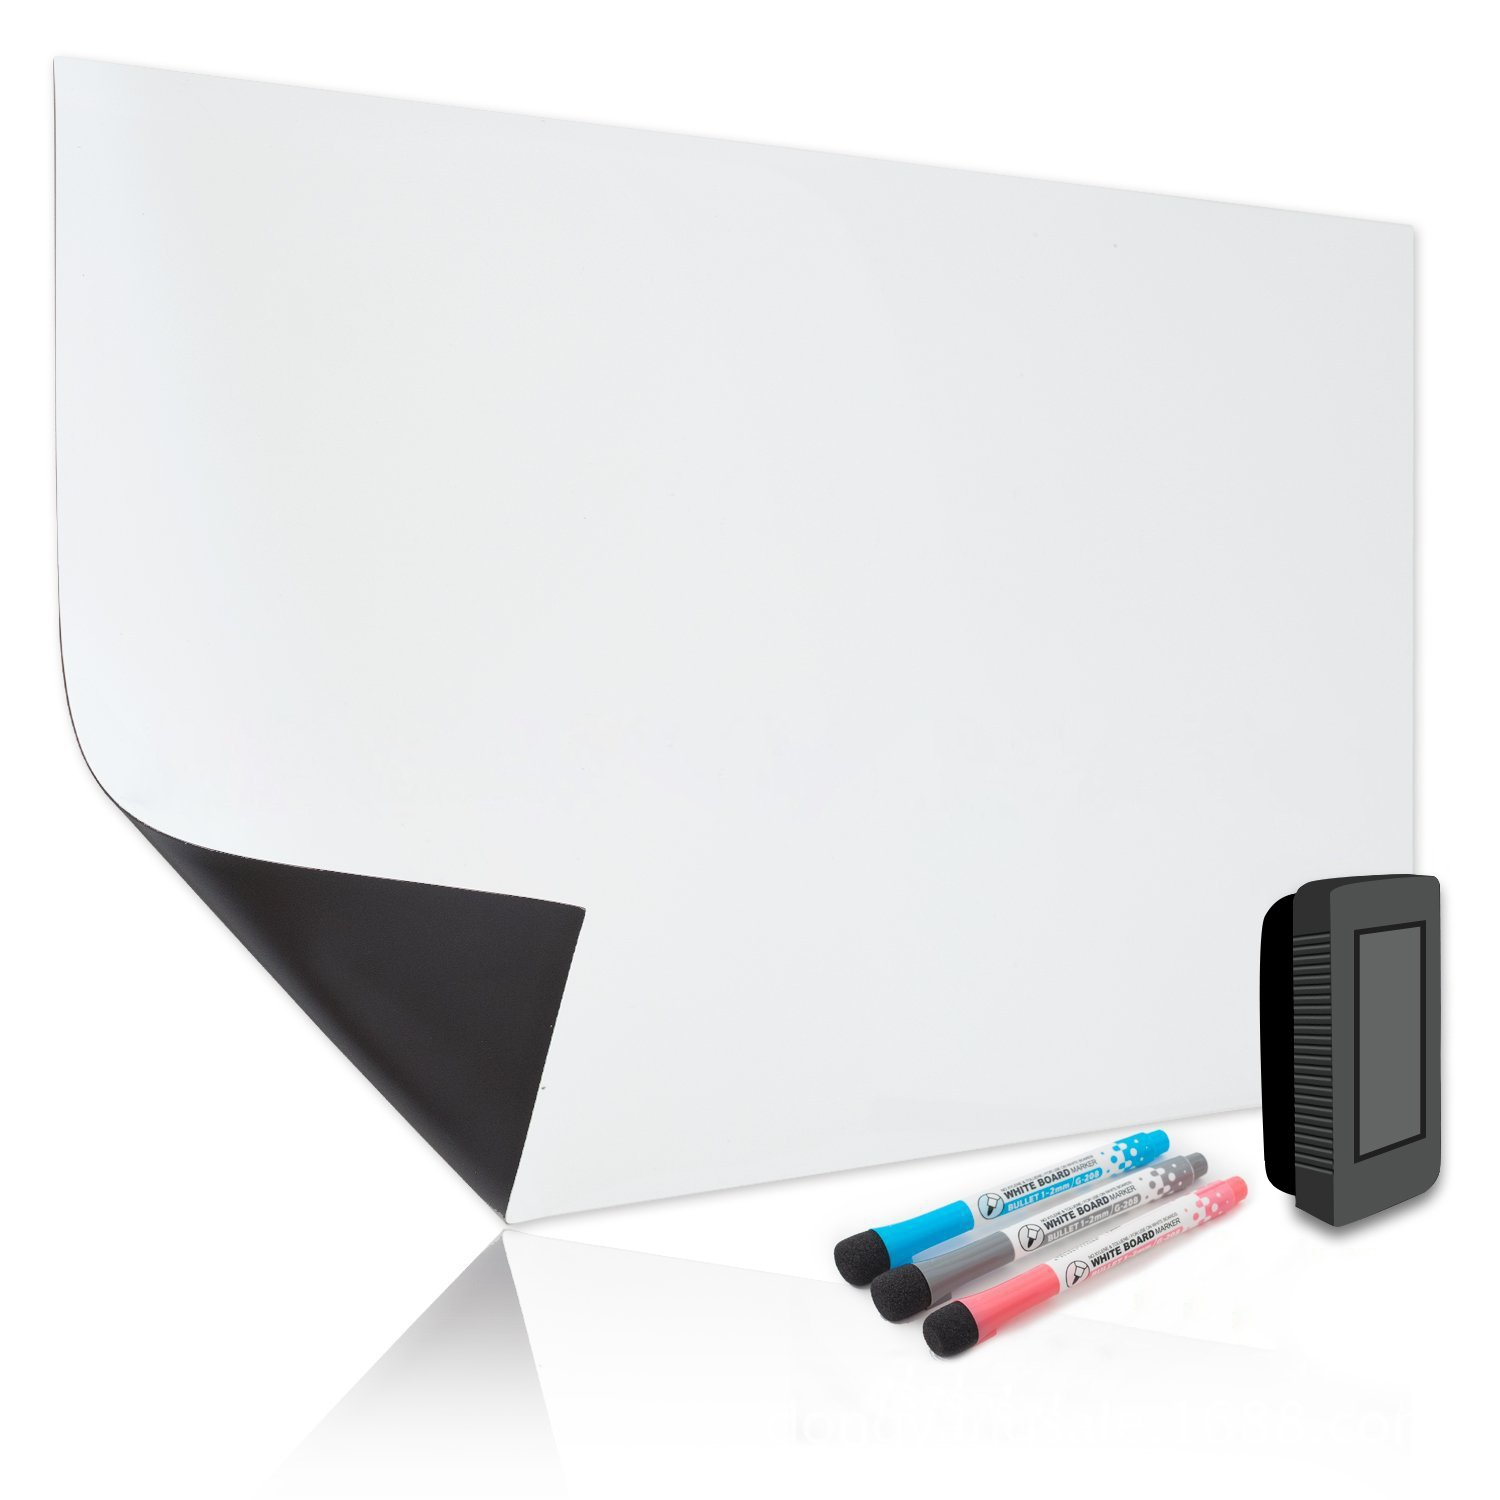 Bonim Magnetic Dry Erase Board for Refrigerator 17X11 inches- White Board Organizer Stain Resistant Technology Multi Purpose Planner- Includes 3 Markers and Big Eraser with Magnets